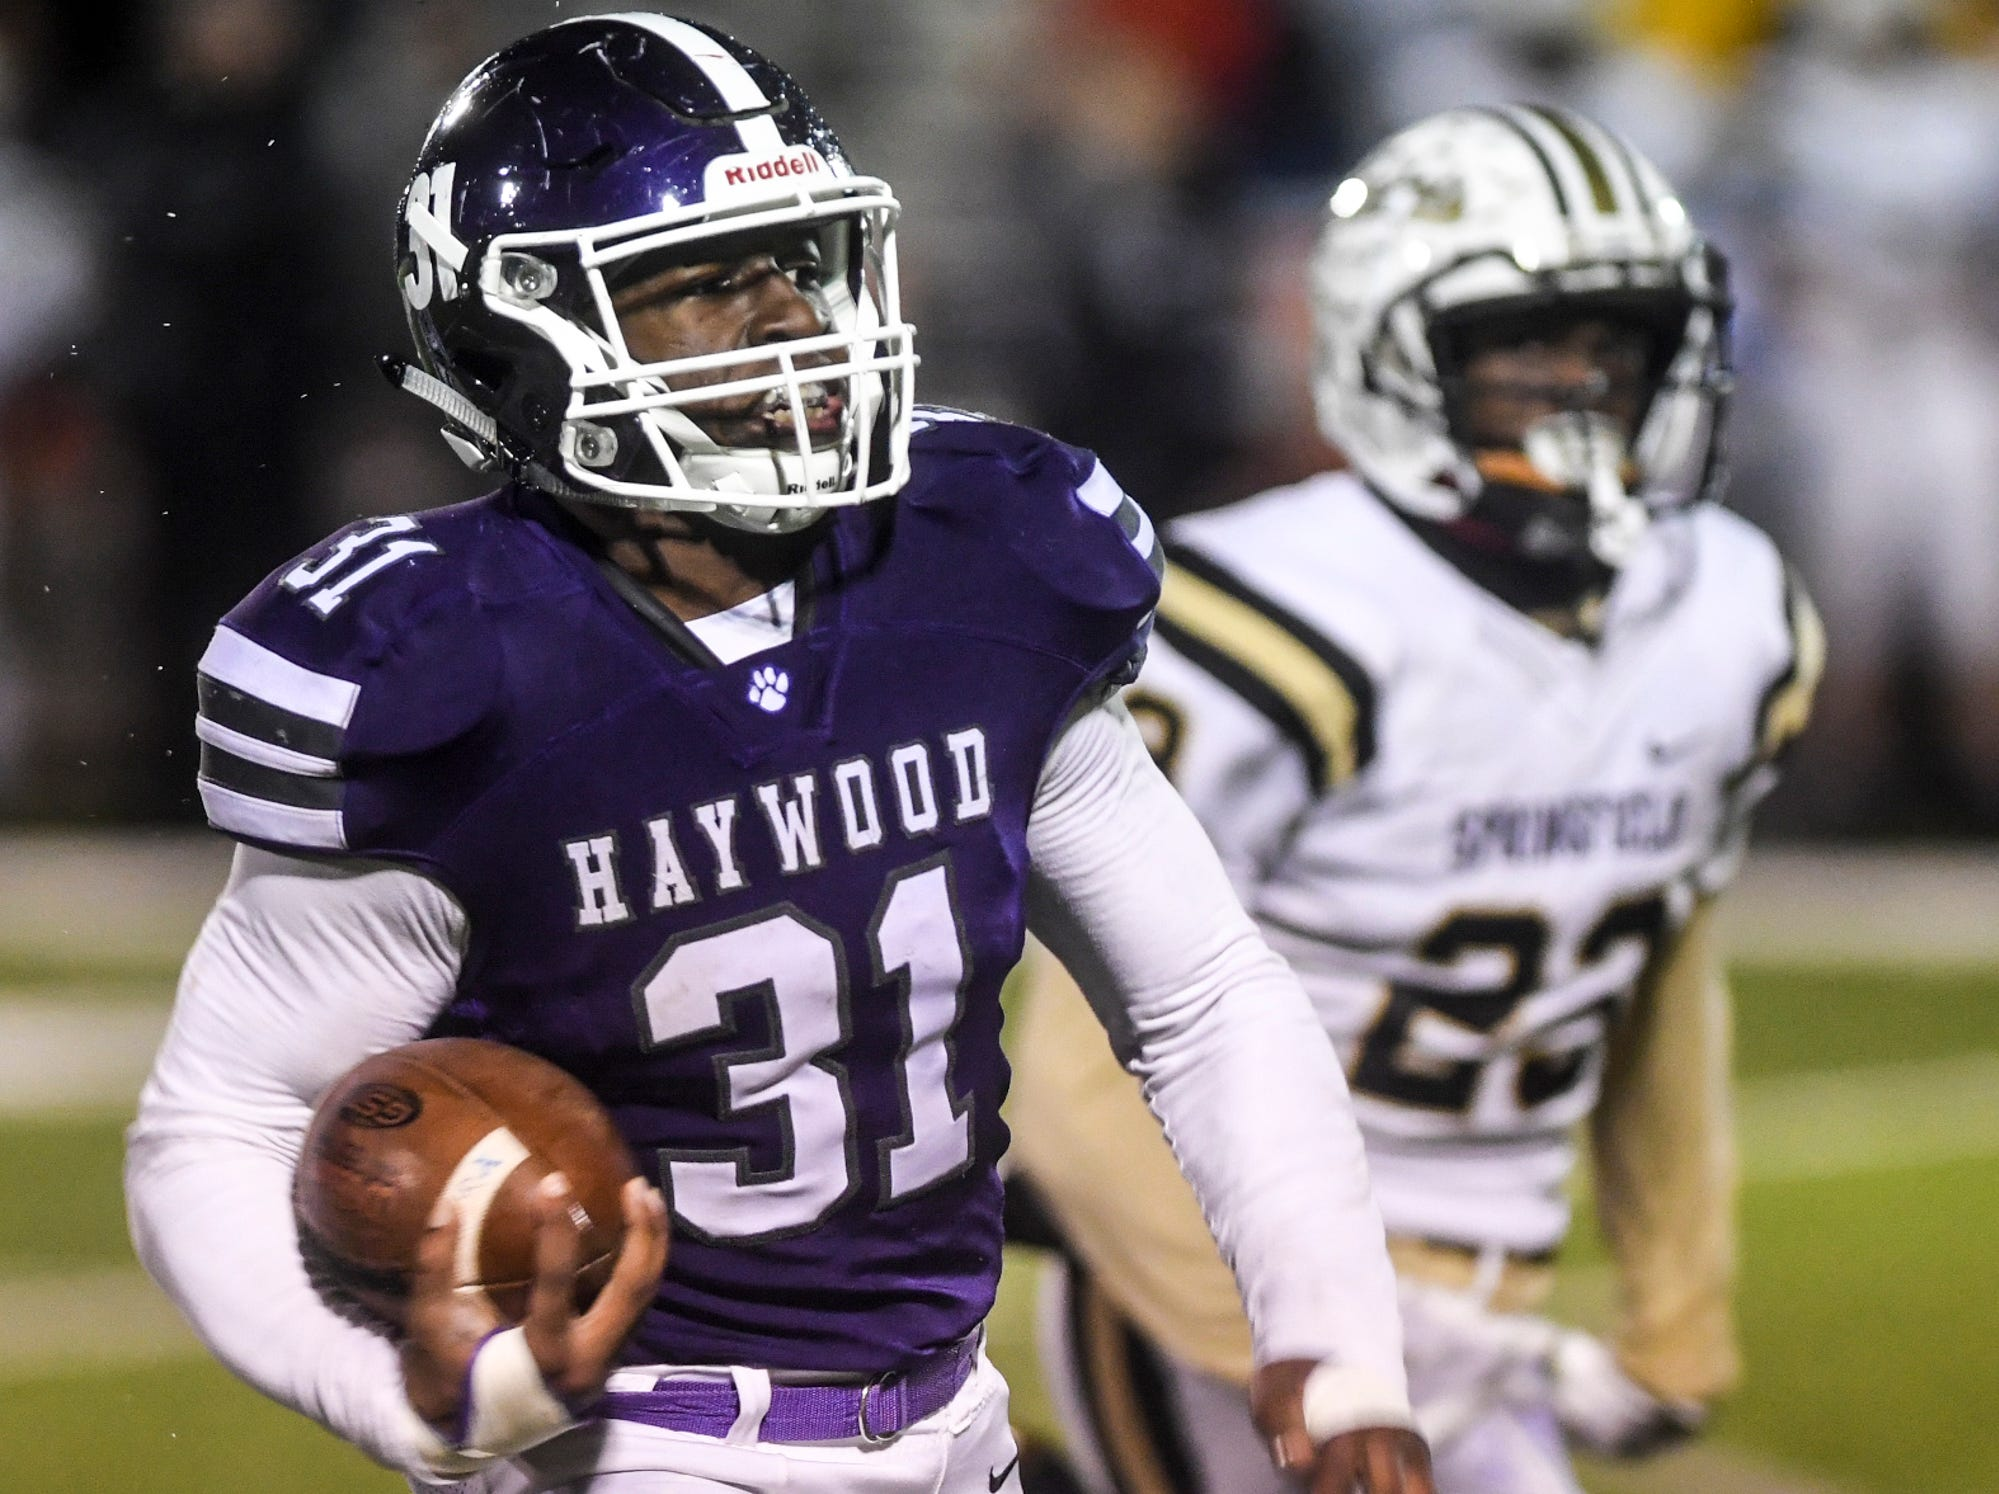 Haywood's Decourtney Reed looks to the end zone for a touchdown during their Class 4A semifinal game, Friday, November 23. Haywood defeated Springfield, 49-14.